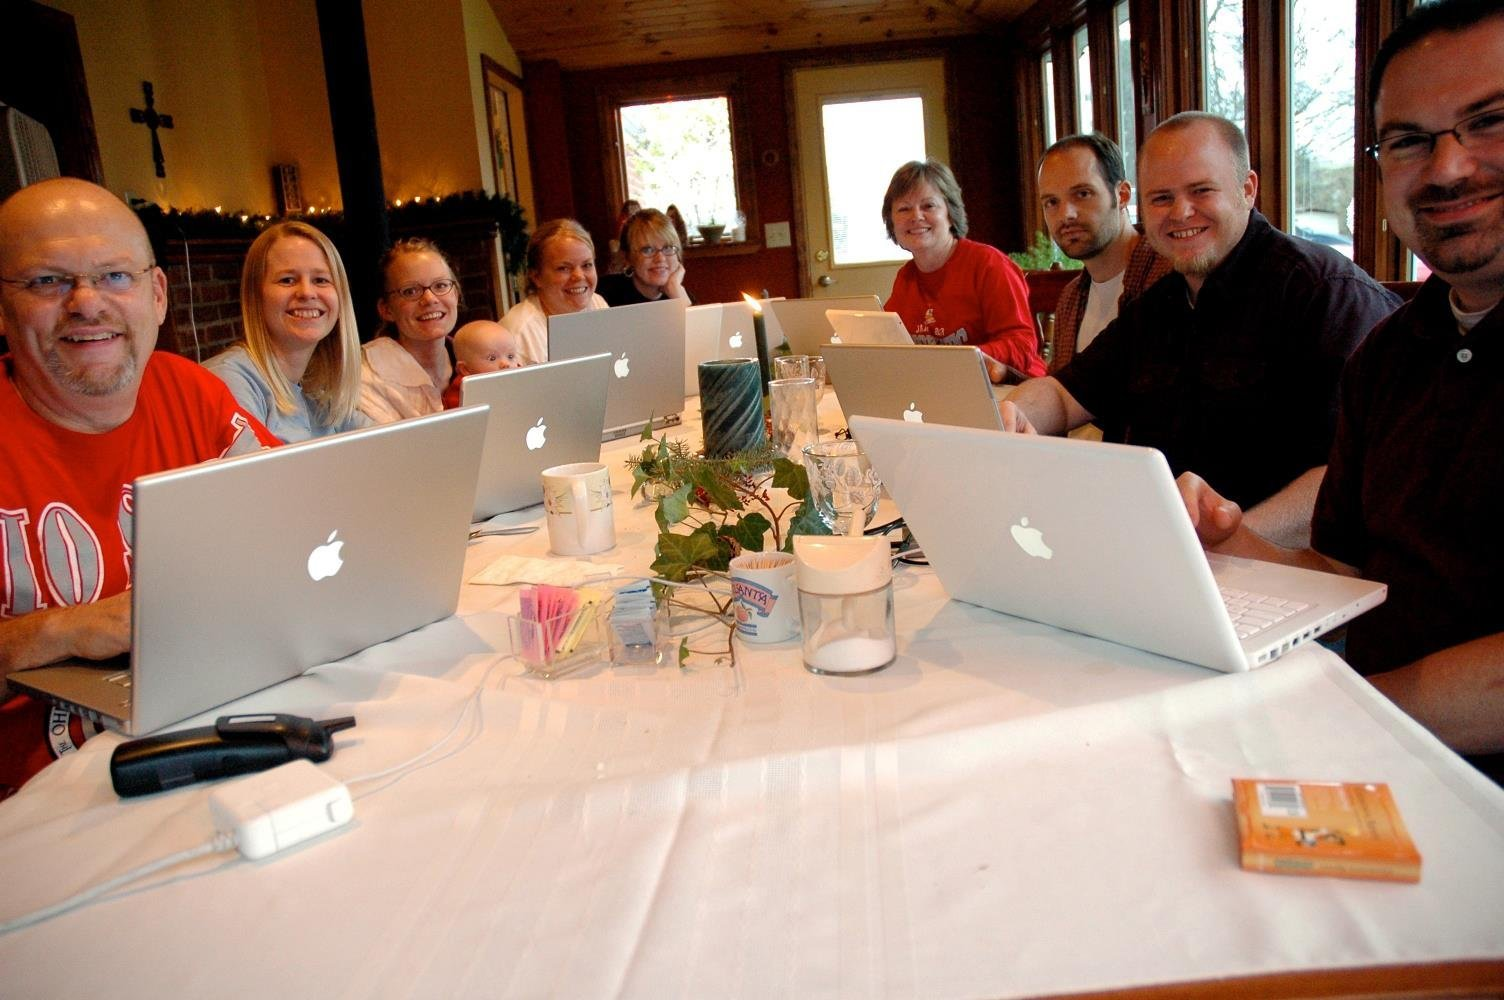 Ron's son, Zach (second one back on the right side of the table) sent me this picture. One of our early, common interests was the Macintosh, and we often spent many hours talking about how much we liked our Macs.